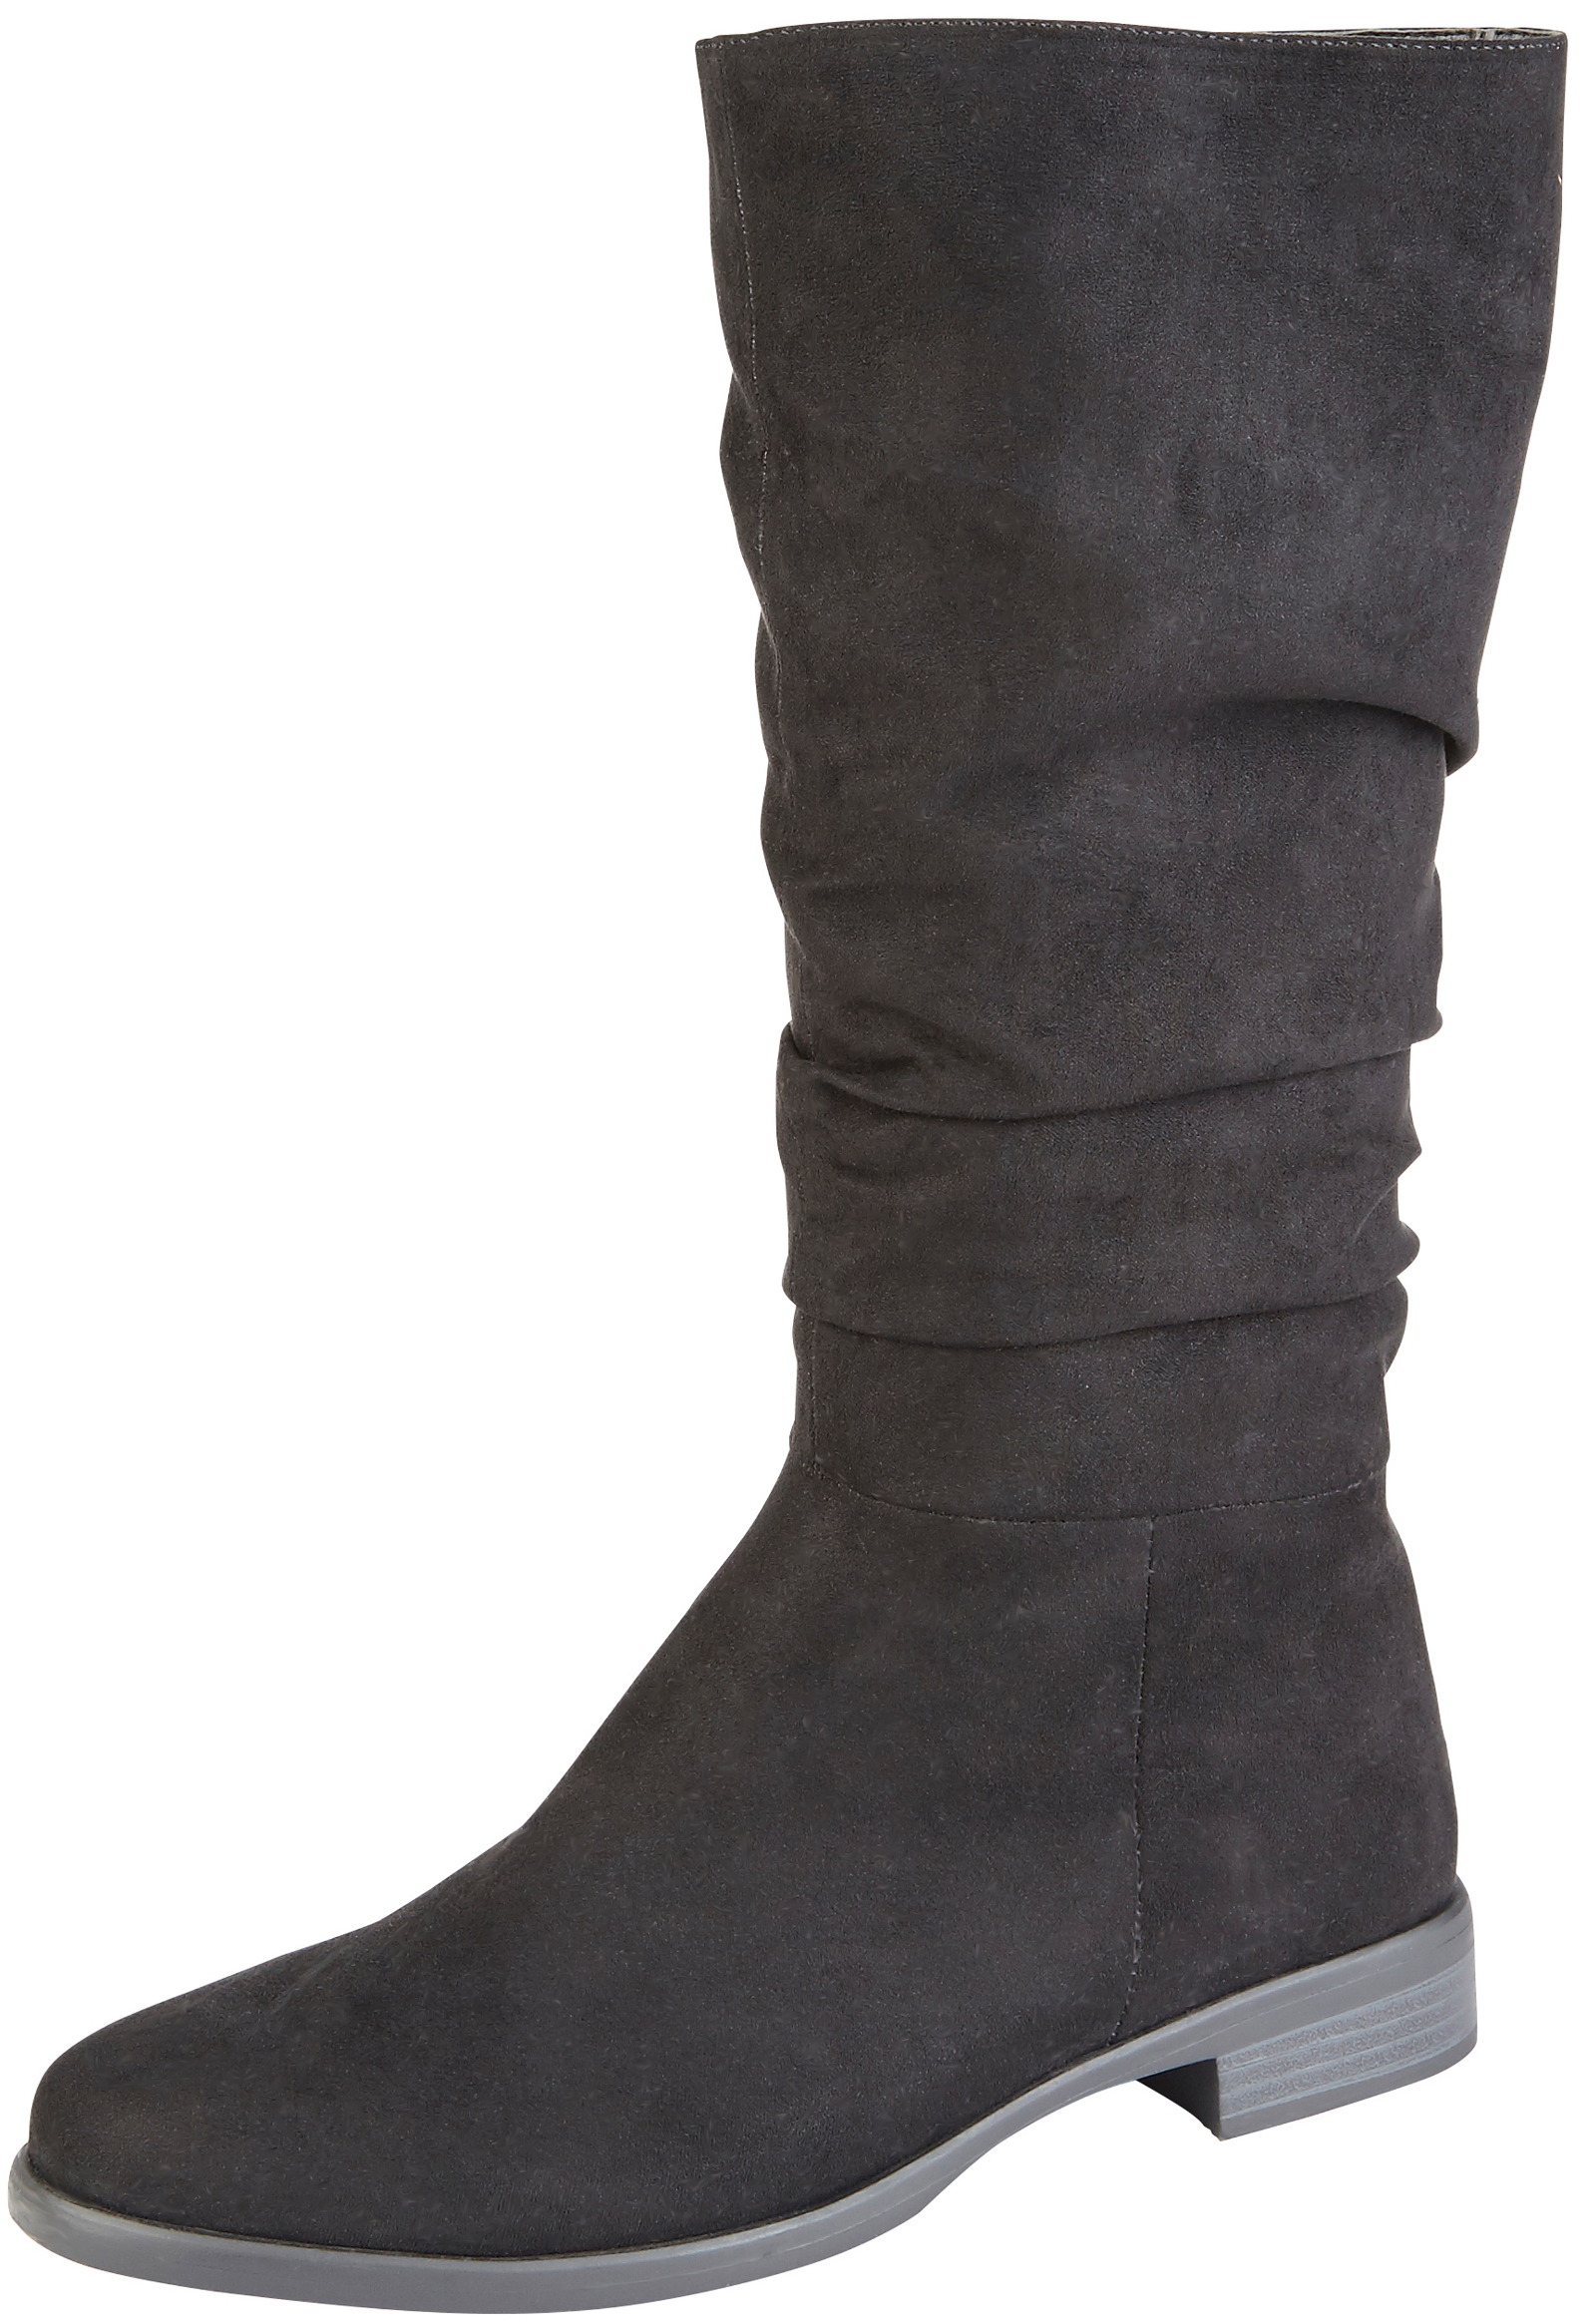 9e53f94ed Girls Faux Leather Suede Slouch Boots Tall Riding Low Heel School Winter  Shoes